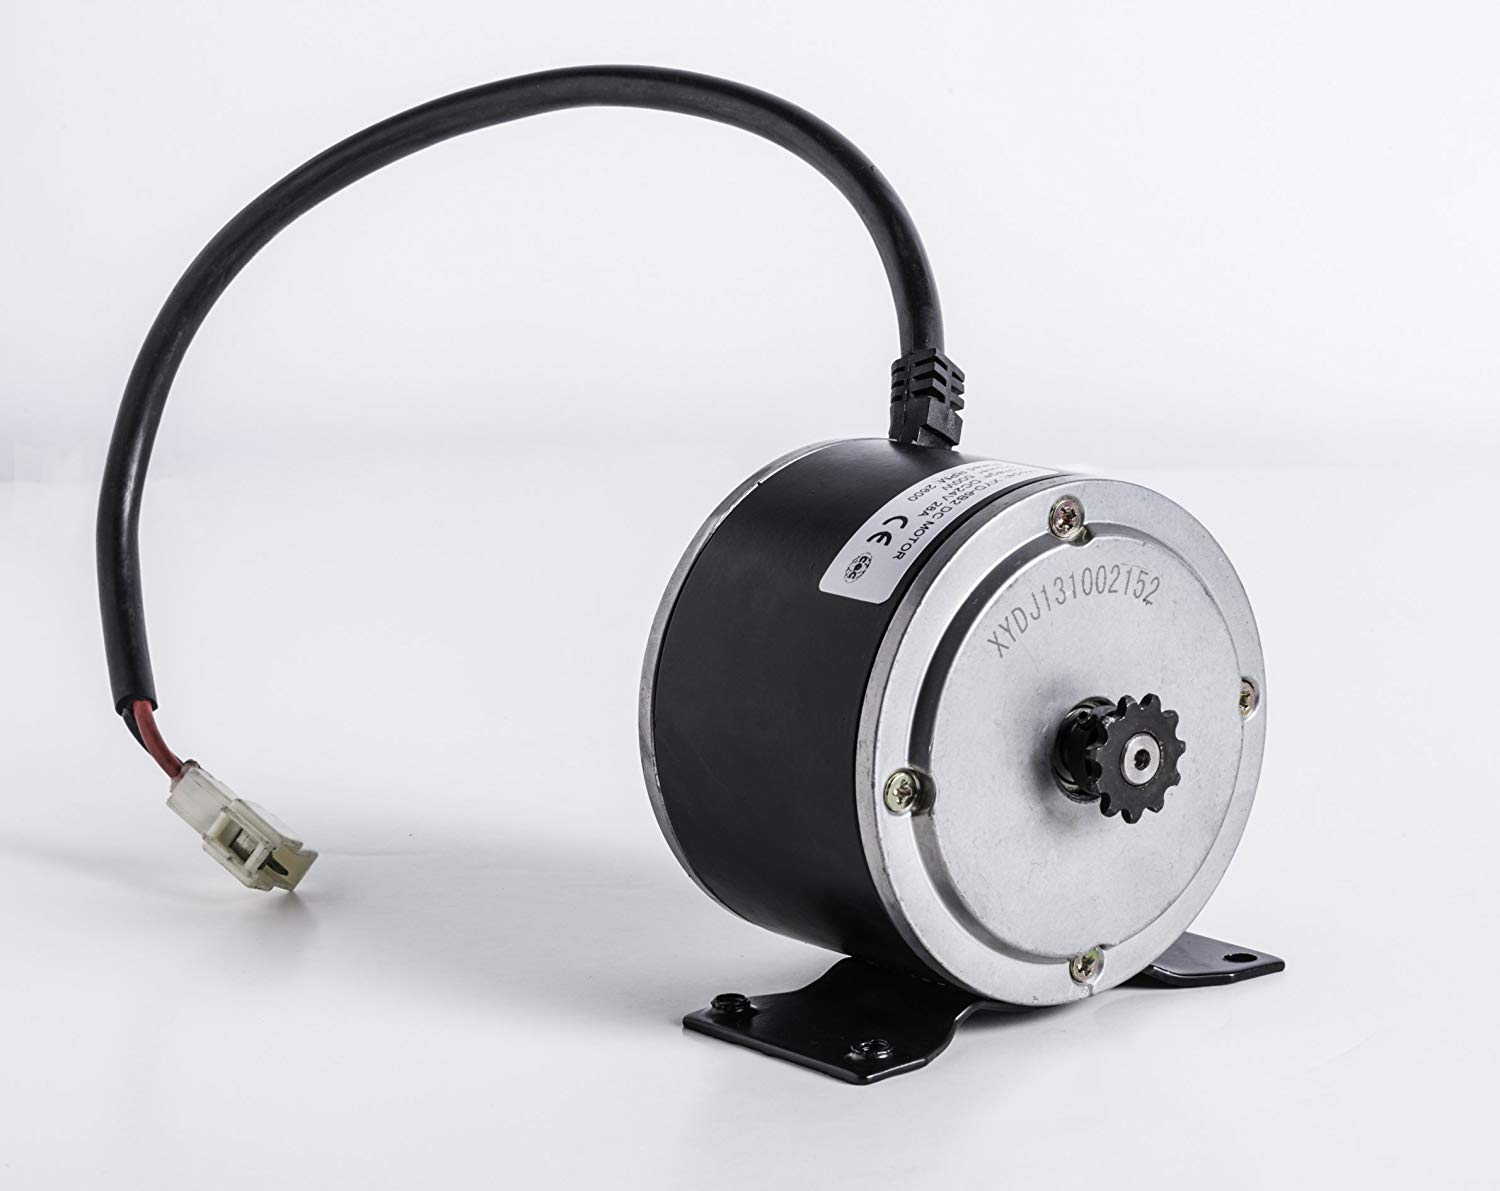 Electric Scooter Motor Currie Technologies 24 Volt 500 Watt DC for 500 Series Schwinn & IZIP Reversible with 11 Tooth Sprocket #25 Chain Model Numbers XYD-6B SD-156 XYDJ130601664